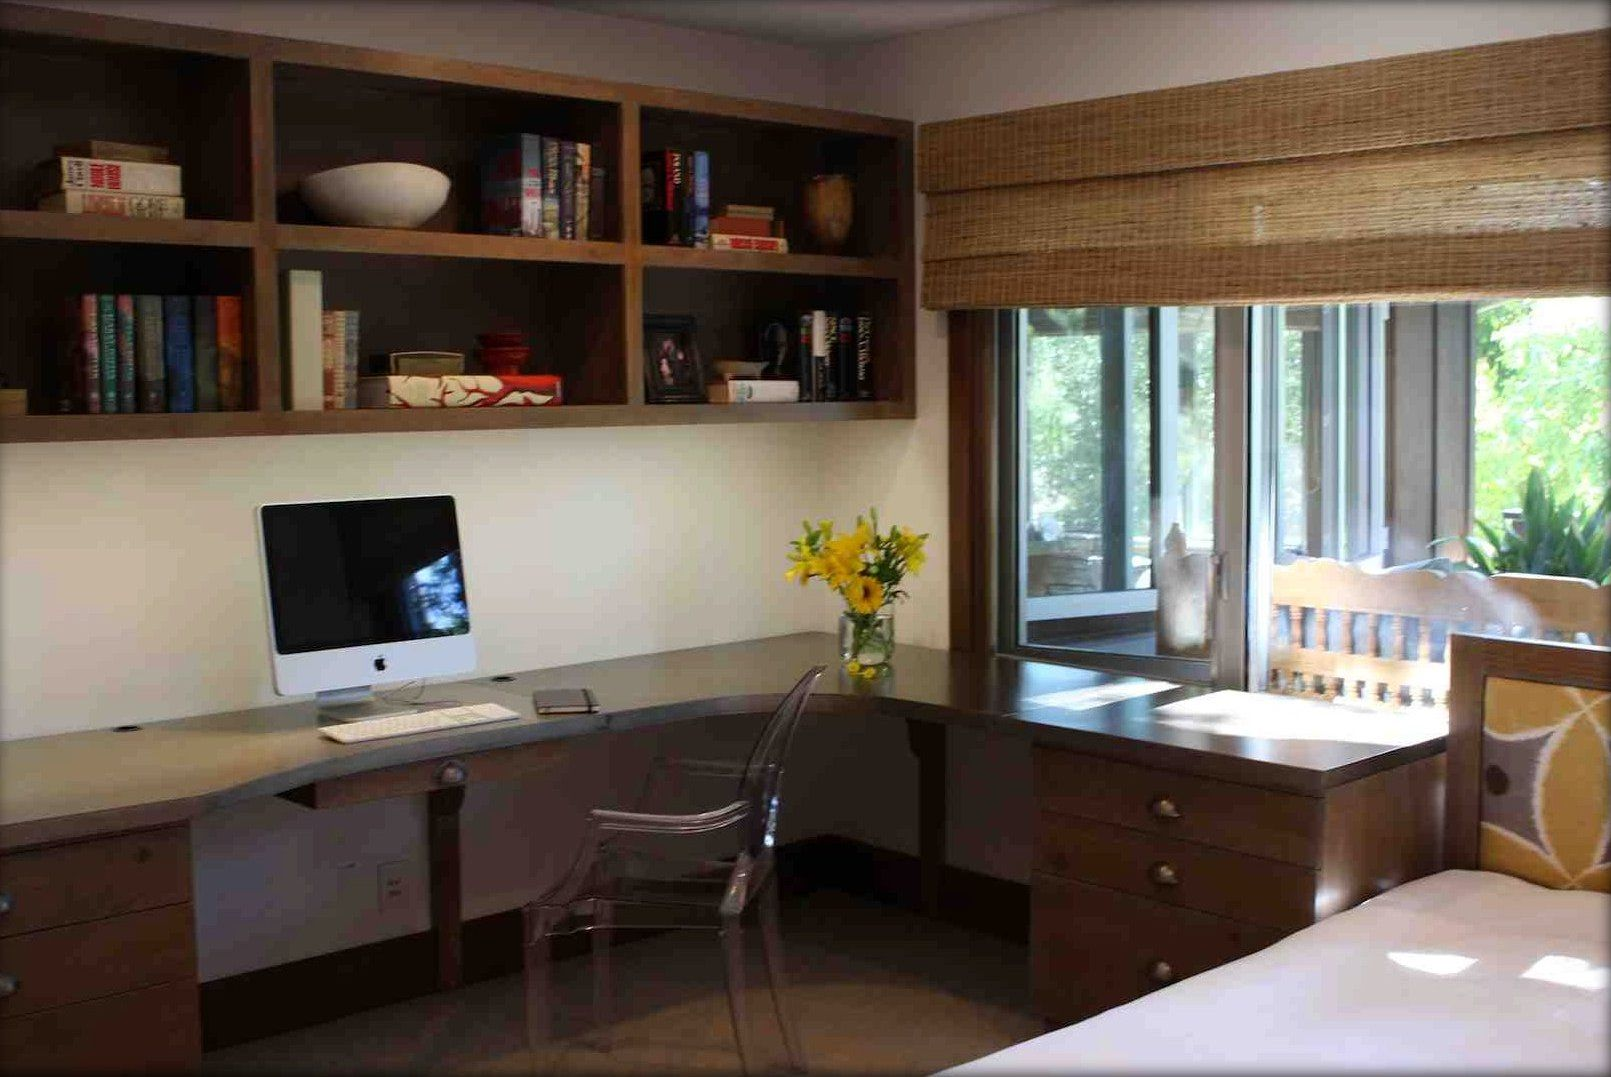 A cheerful design ideas modern home office industrial stainless | LP ...